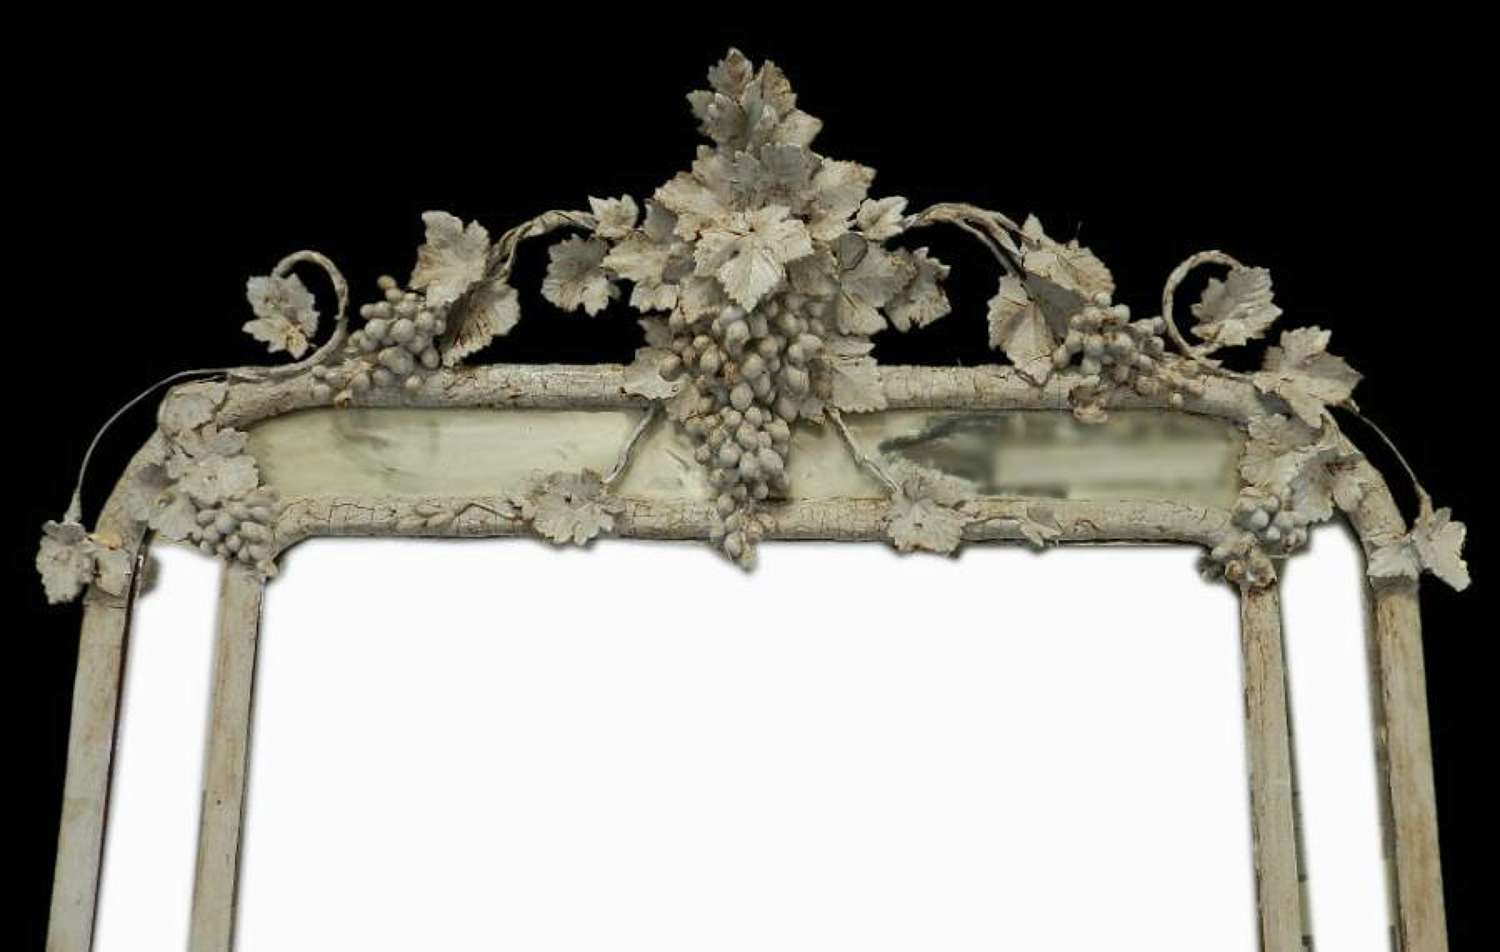 Huge Gloriously Distressed C19 Antique French Parcloses Mirror